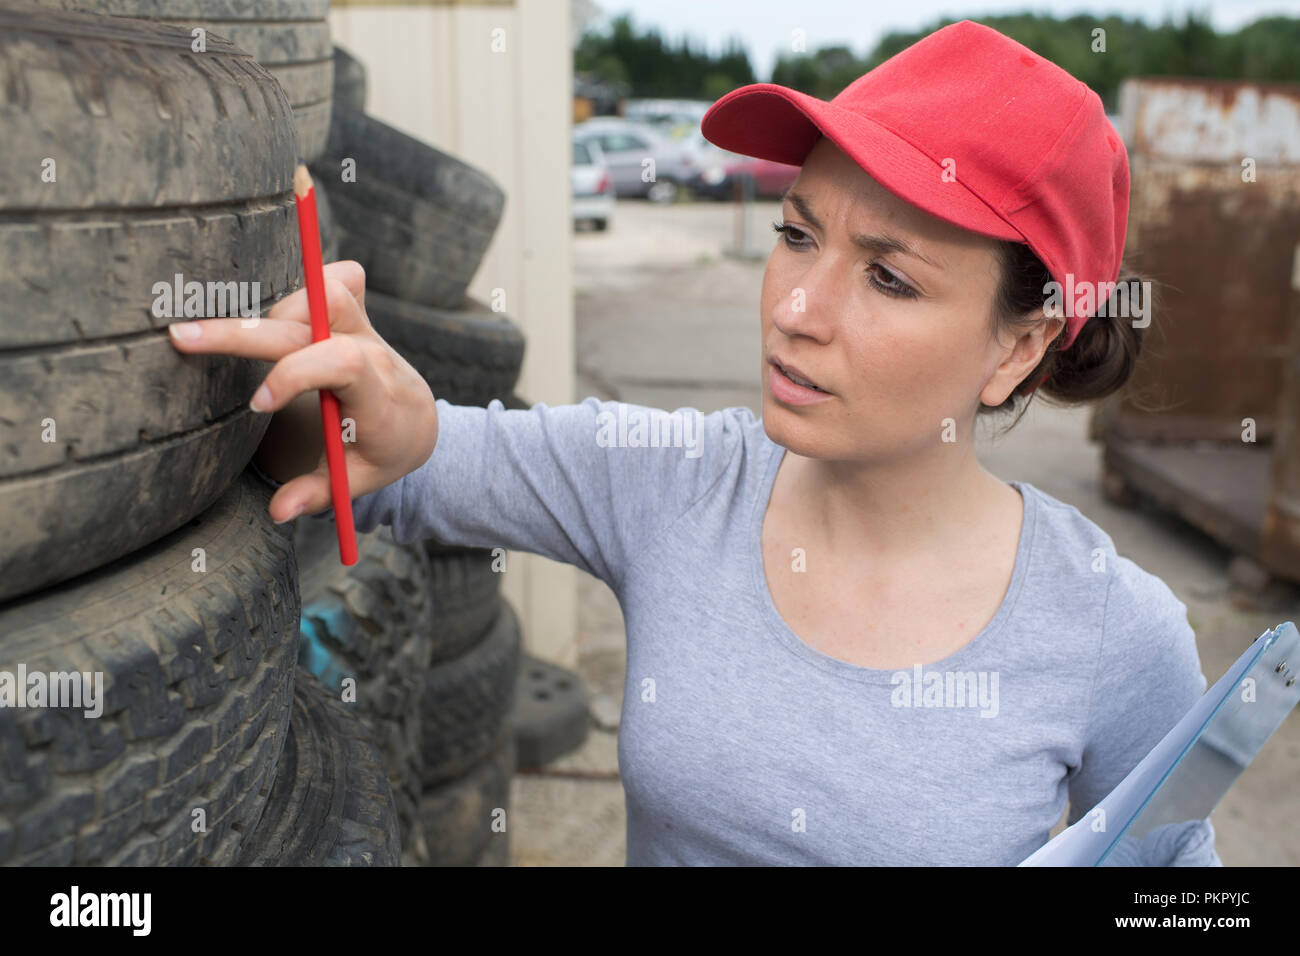 woman checking tread on car tyre with gauge Stock Photo